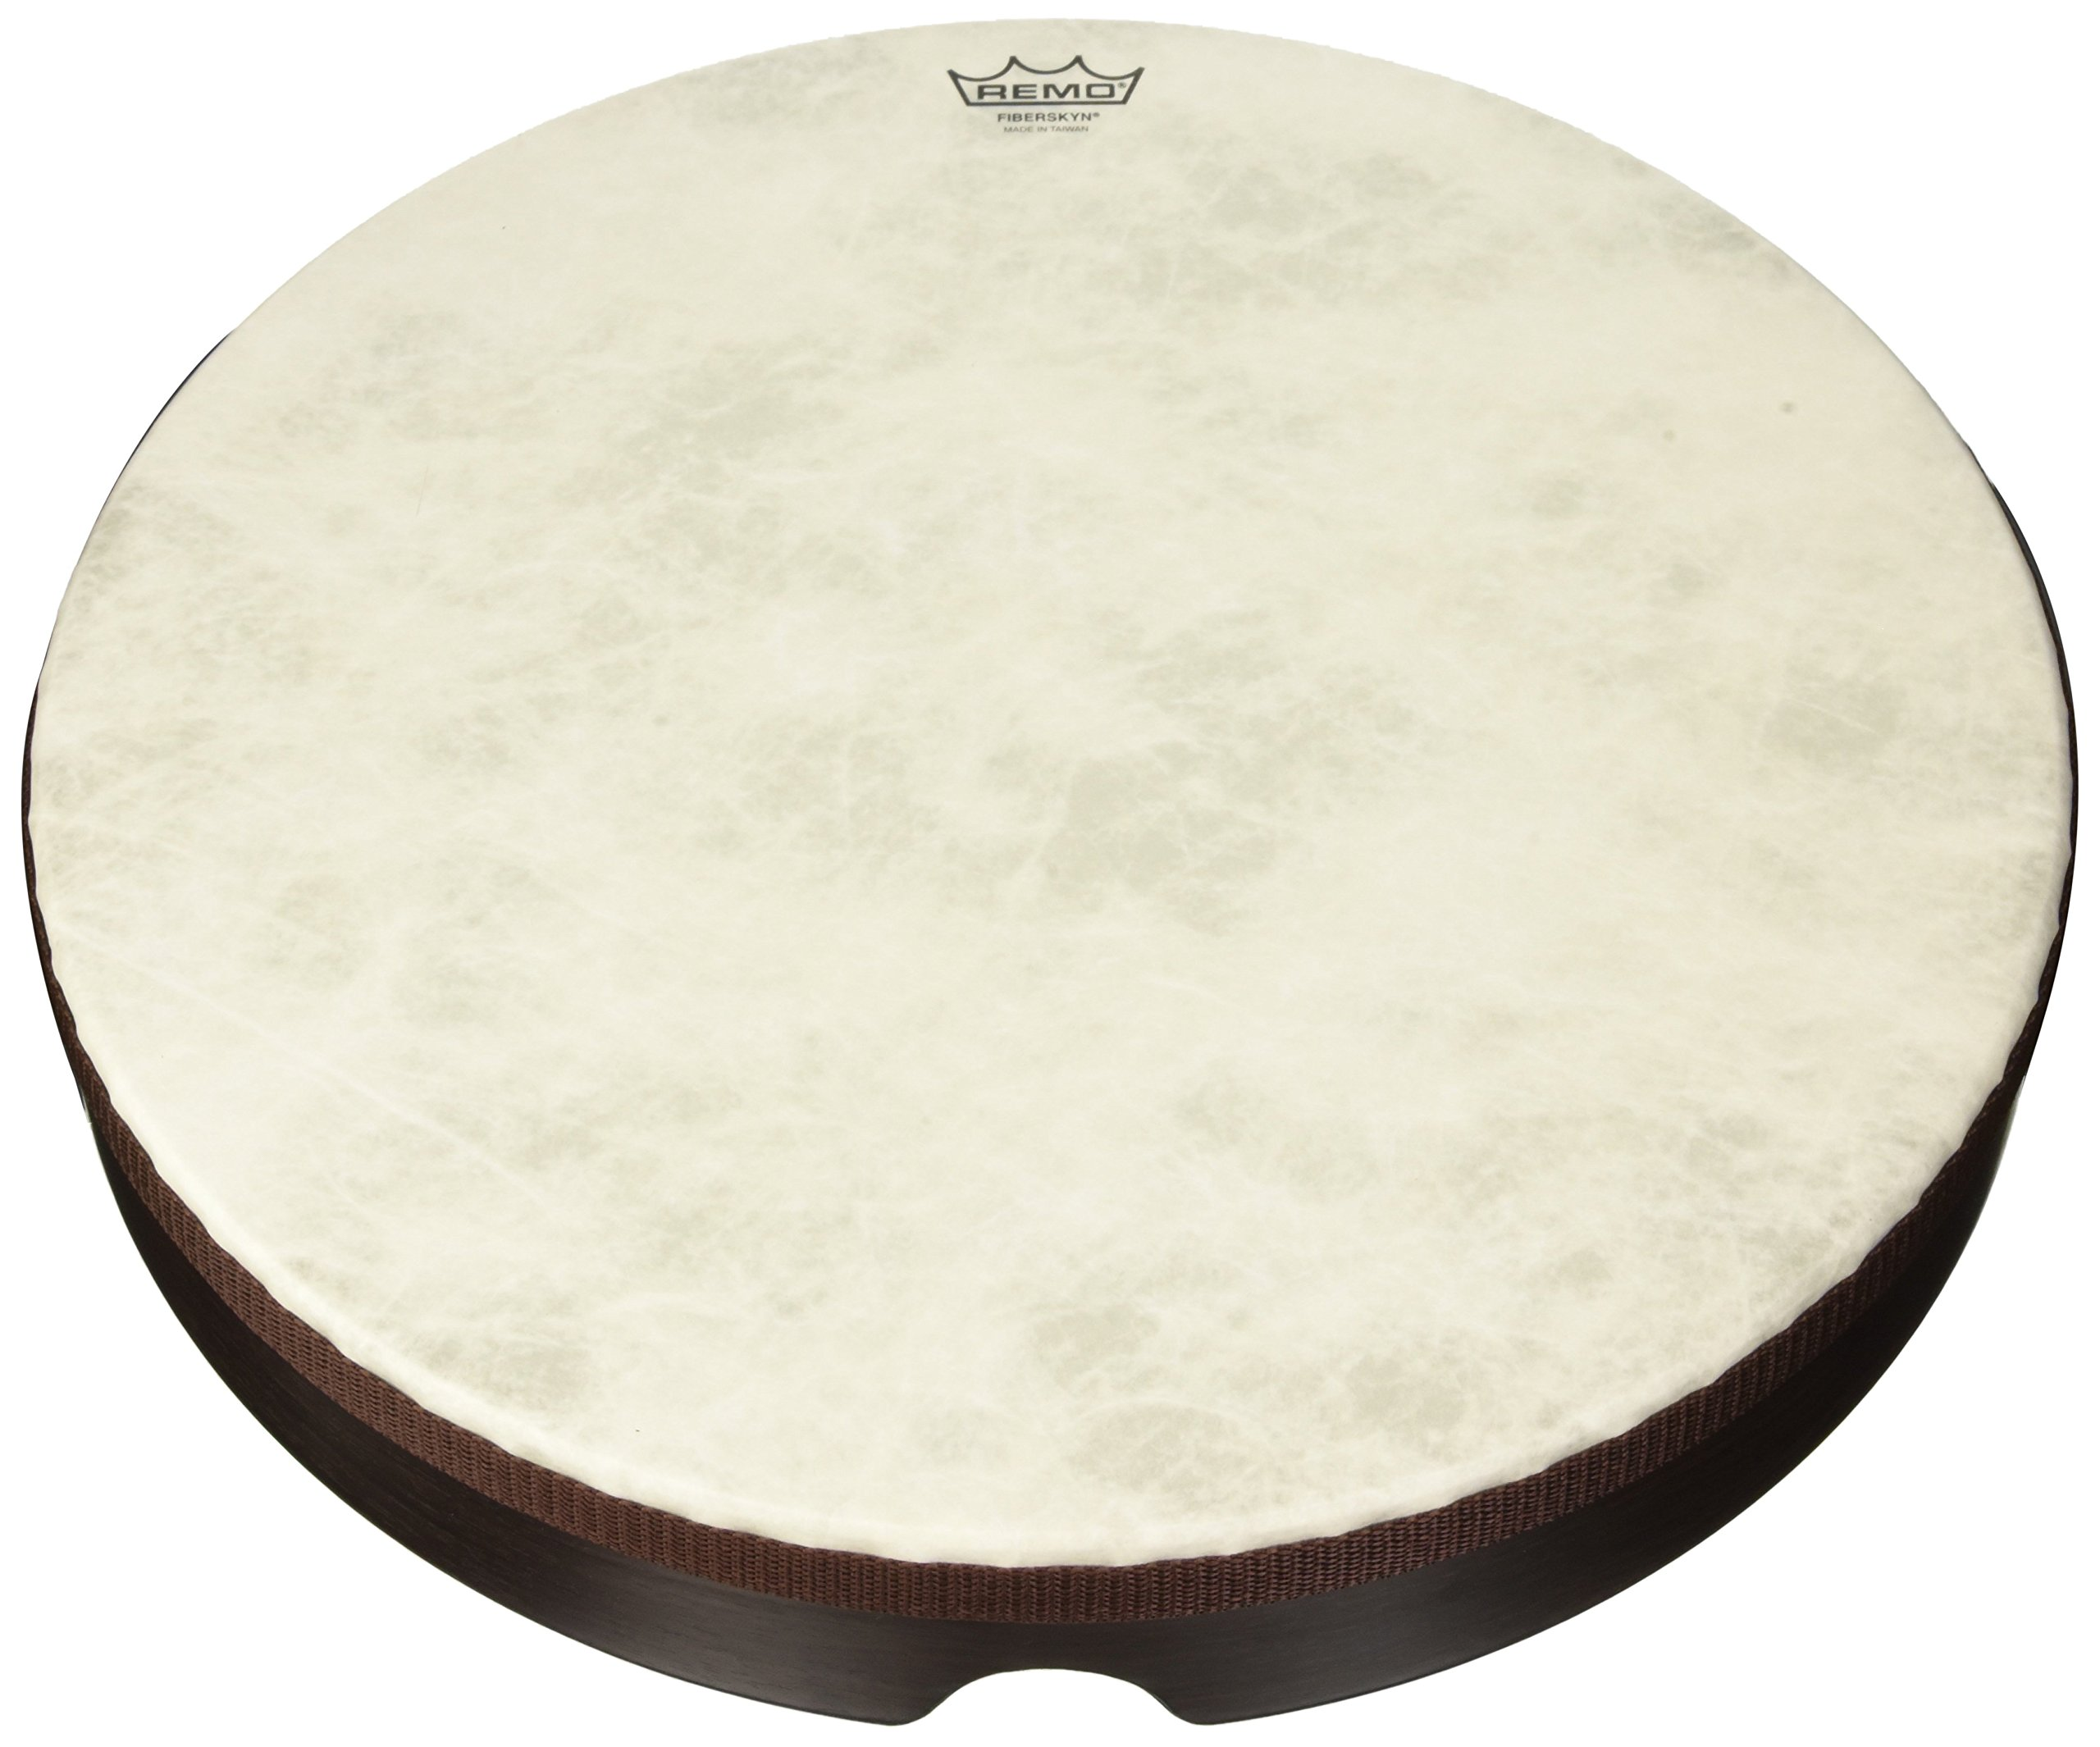 Remo Fiberskyn Frame Drum, 16'' by Remo